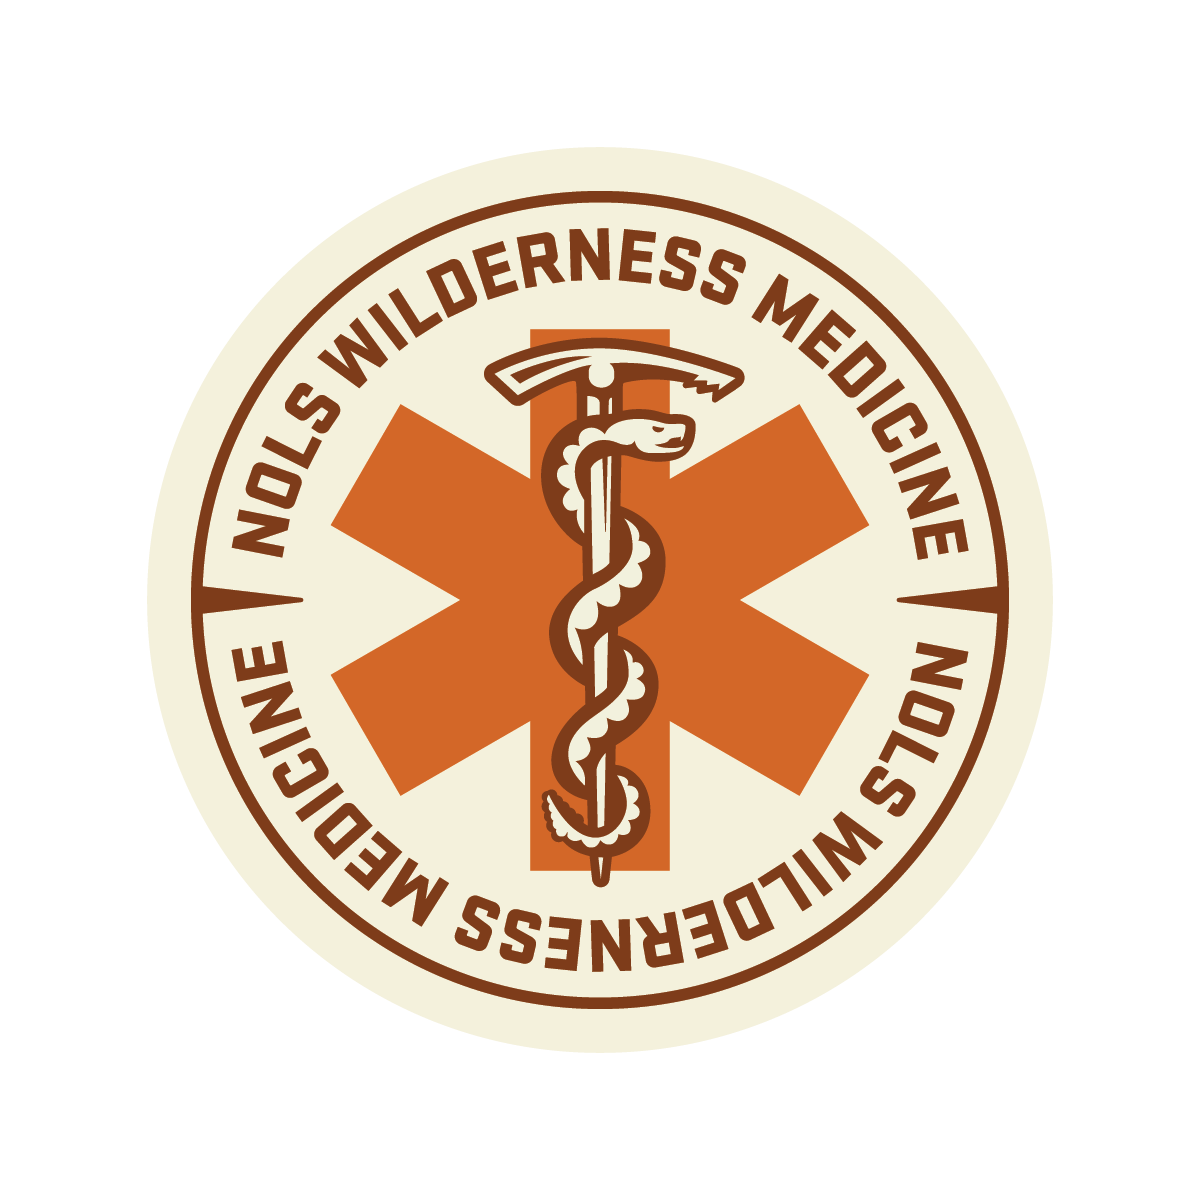 NOLS Wilderness Medicine Badge